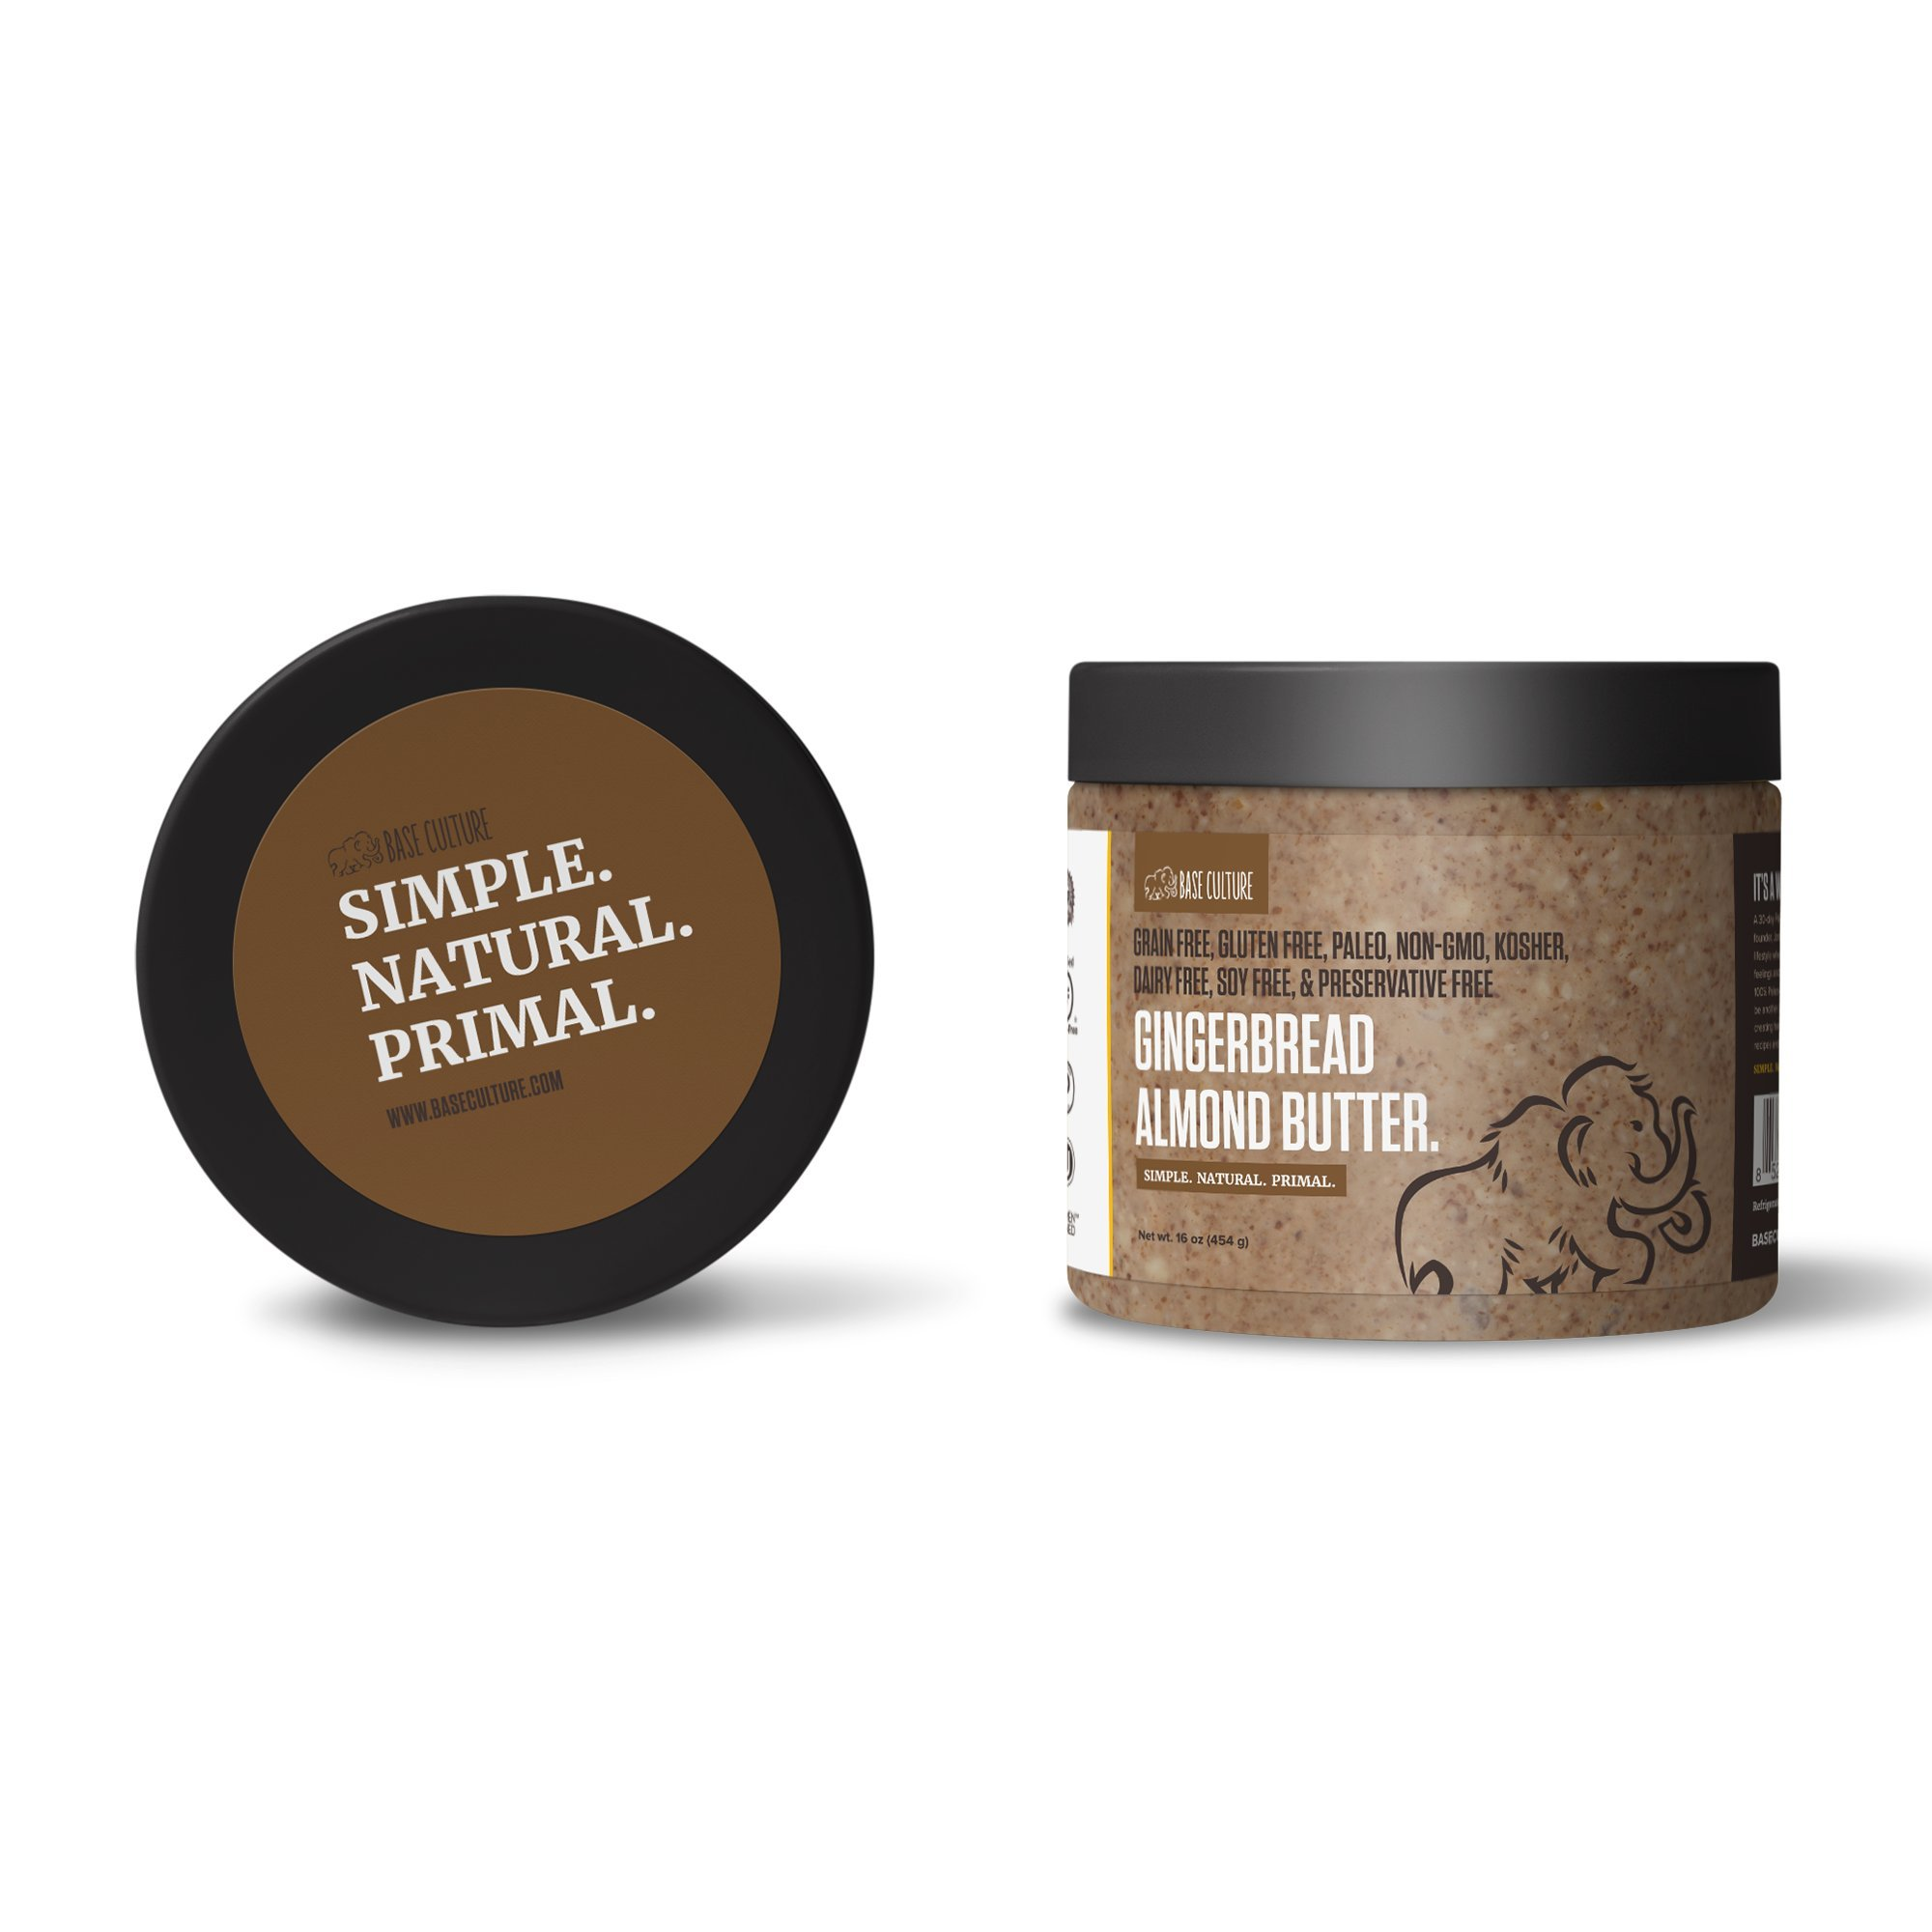 Paleo Almond Butter, Gingerbread Almond, 100% Paleo Certified, Gluten Free Almond Butter, 6g Protein Per Serving, Crafted by Base Culture (6 Count)